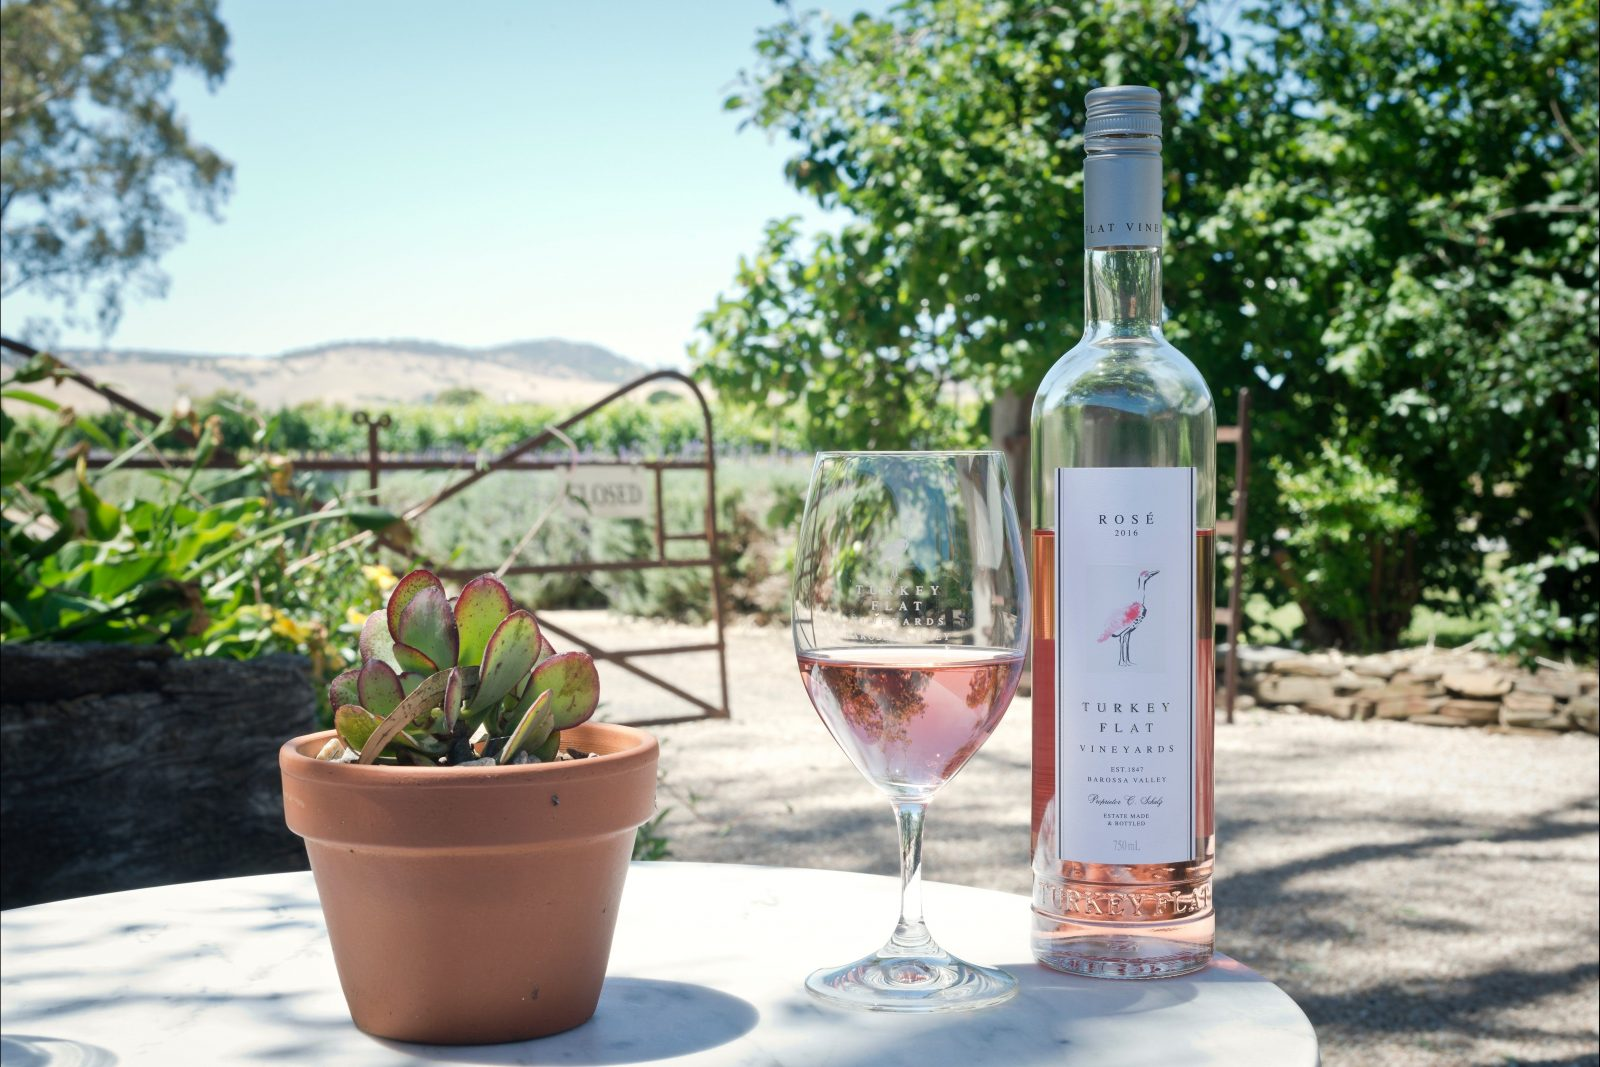 Enjoy a glass of rosé in the gardens at Turkey Flat Vineyards along the Bethany to Angaston Trail